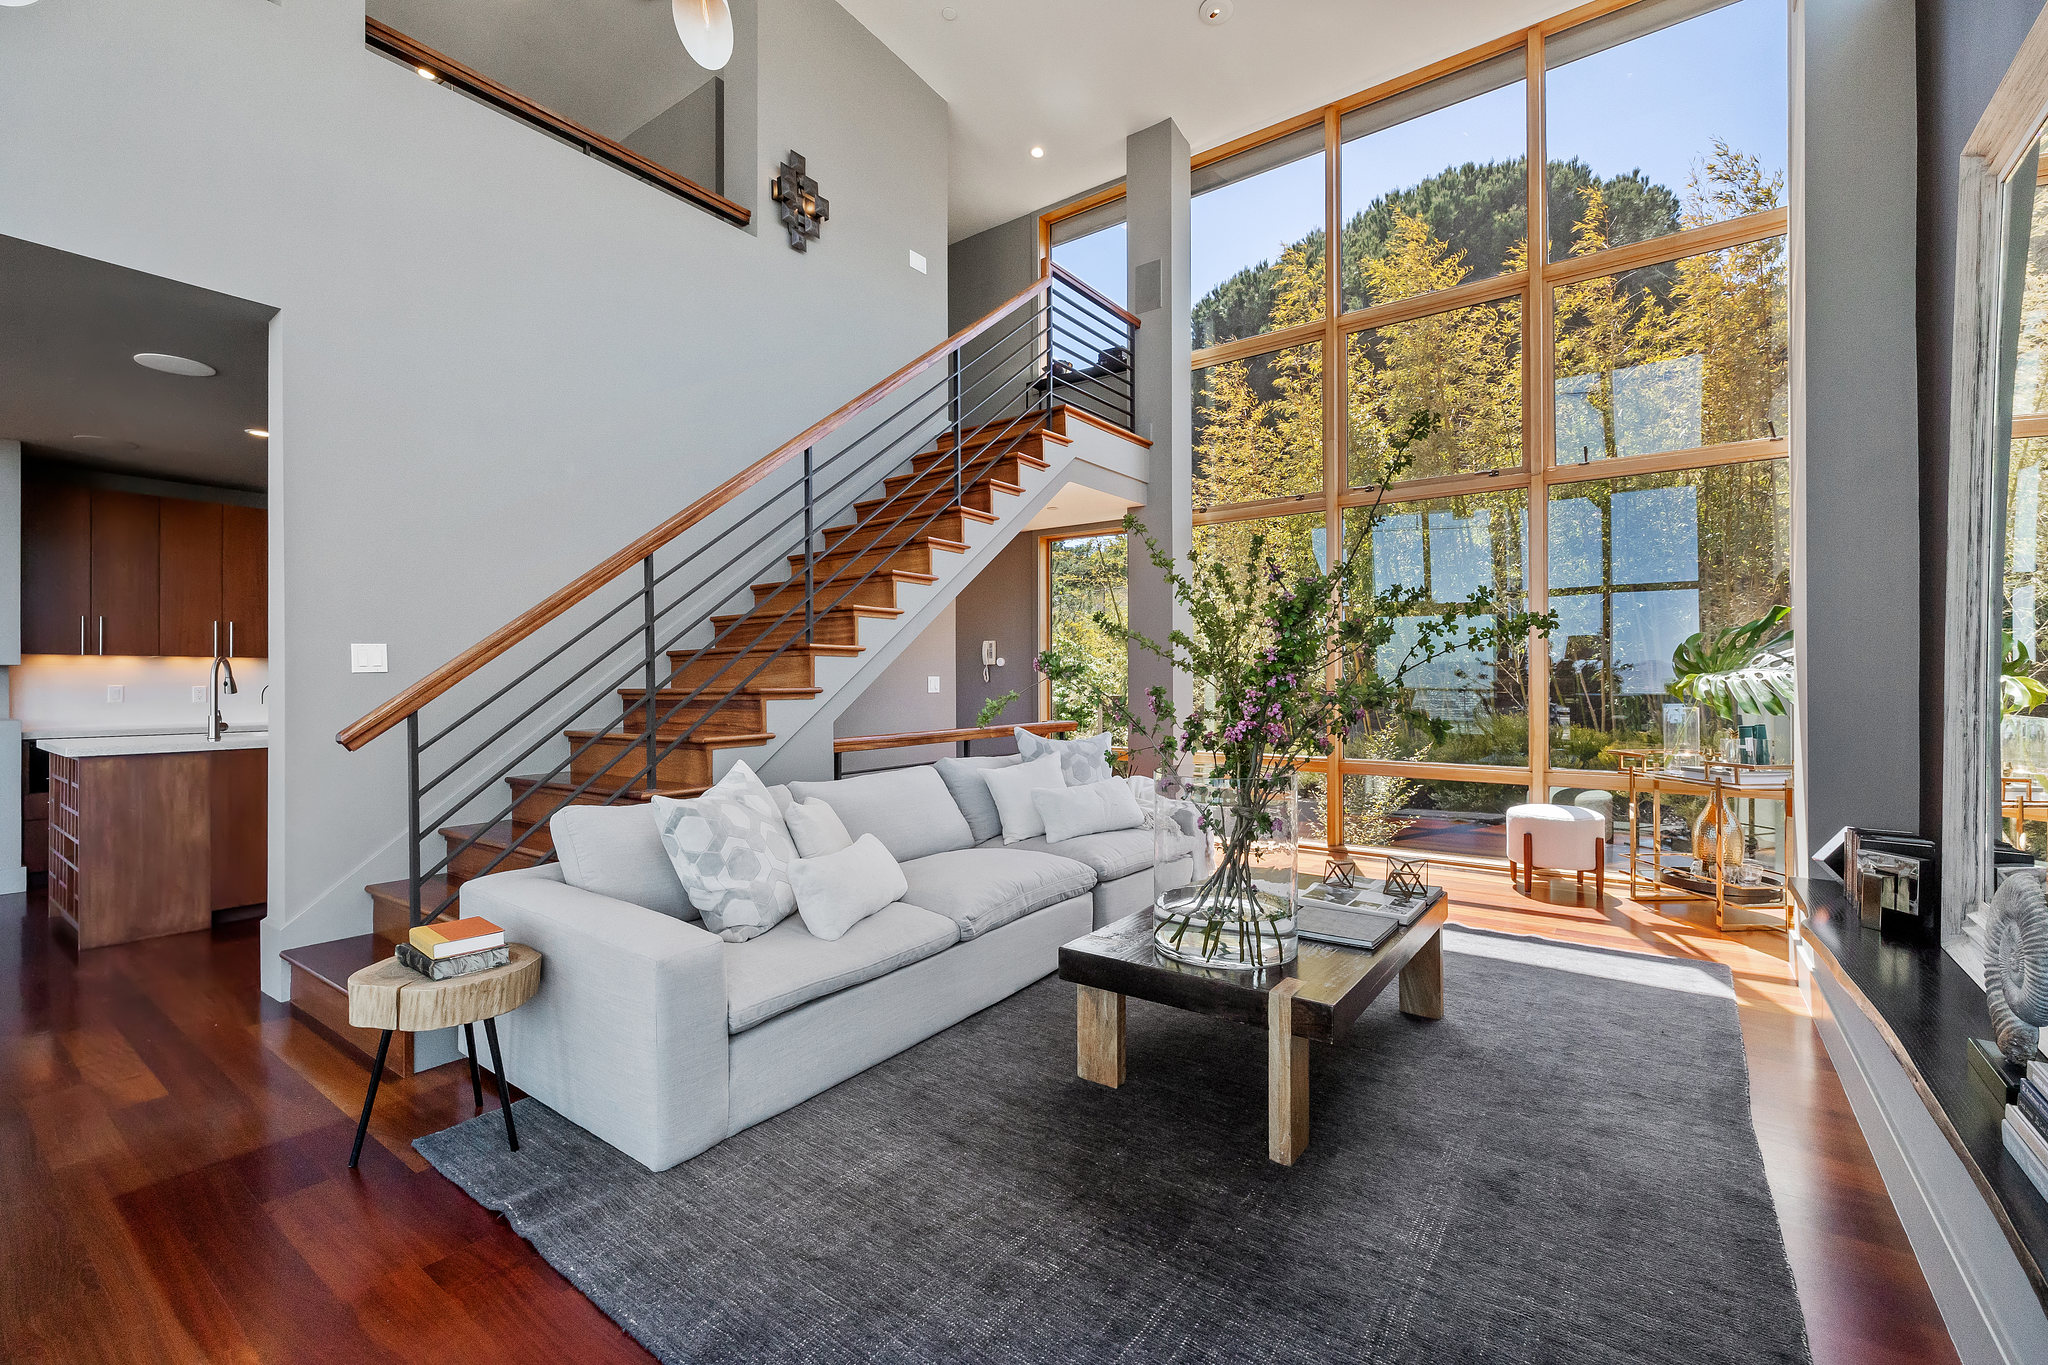 Peaceful morning image of living room with white couch, large mirror, and floor to ceiling windows